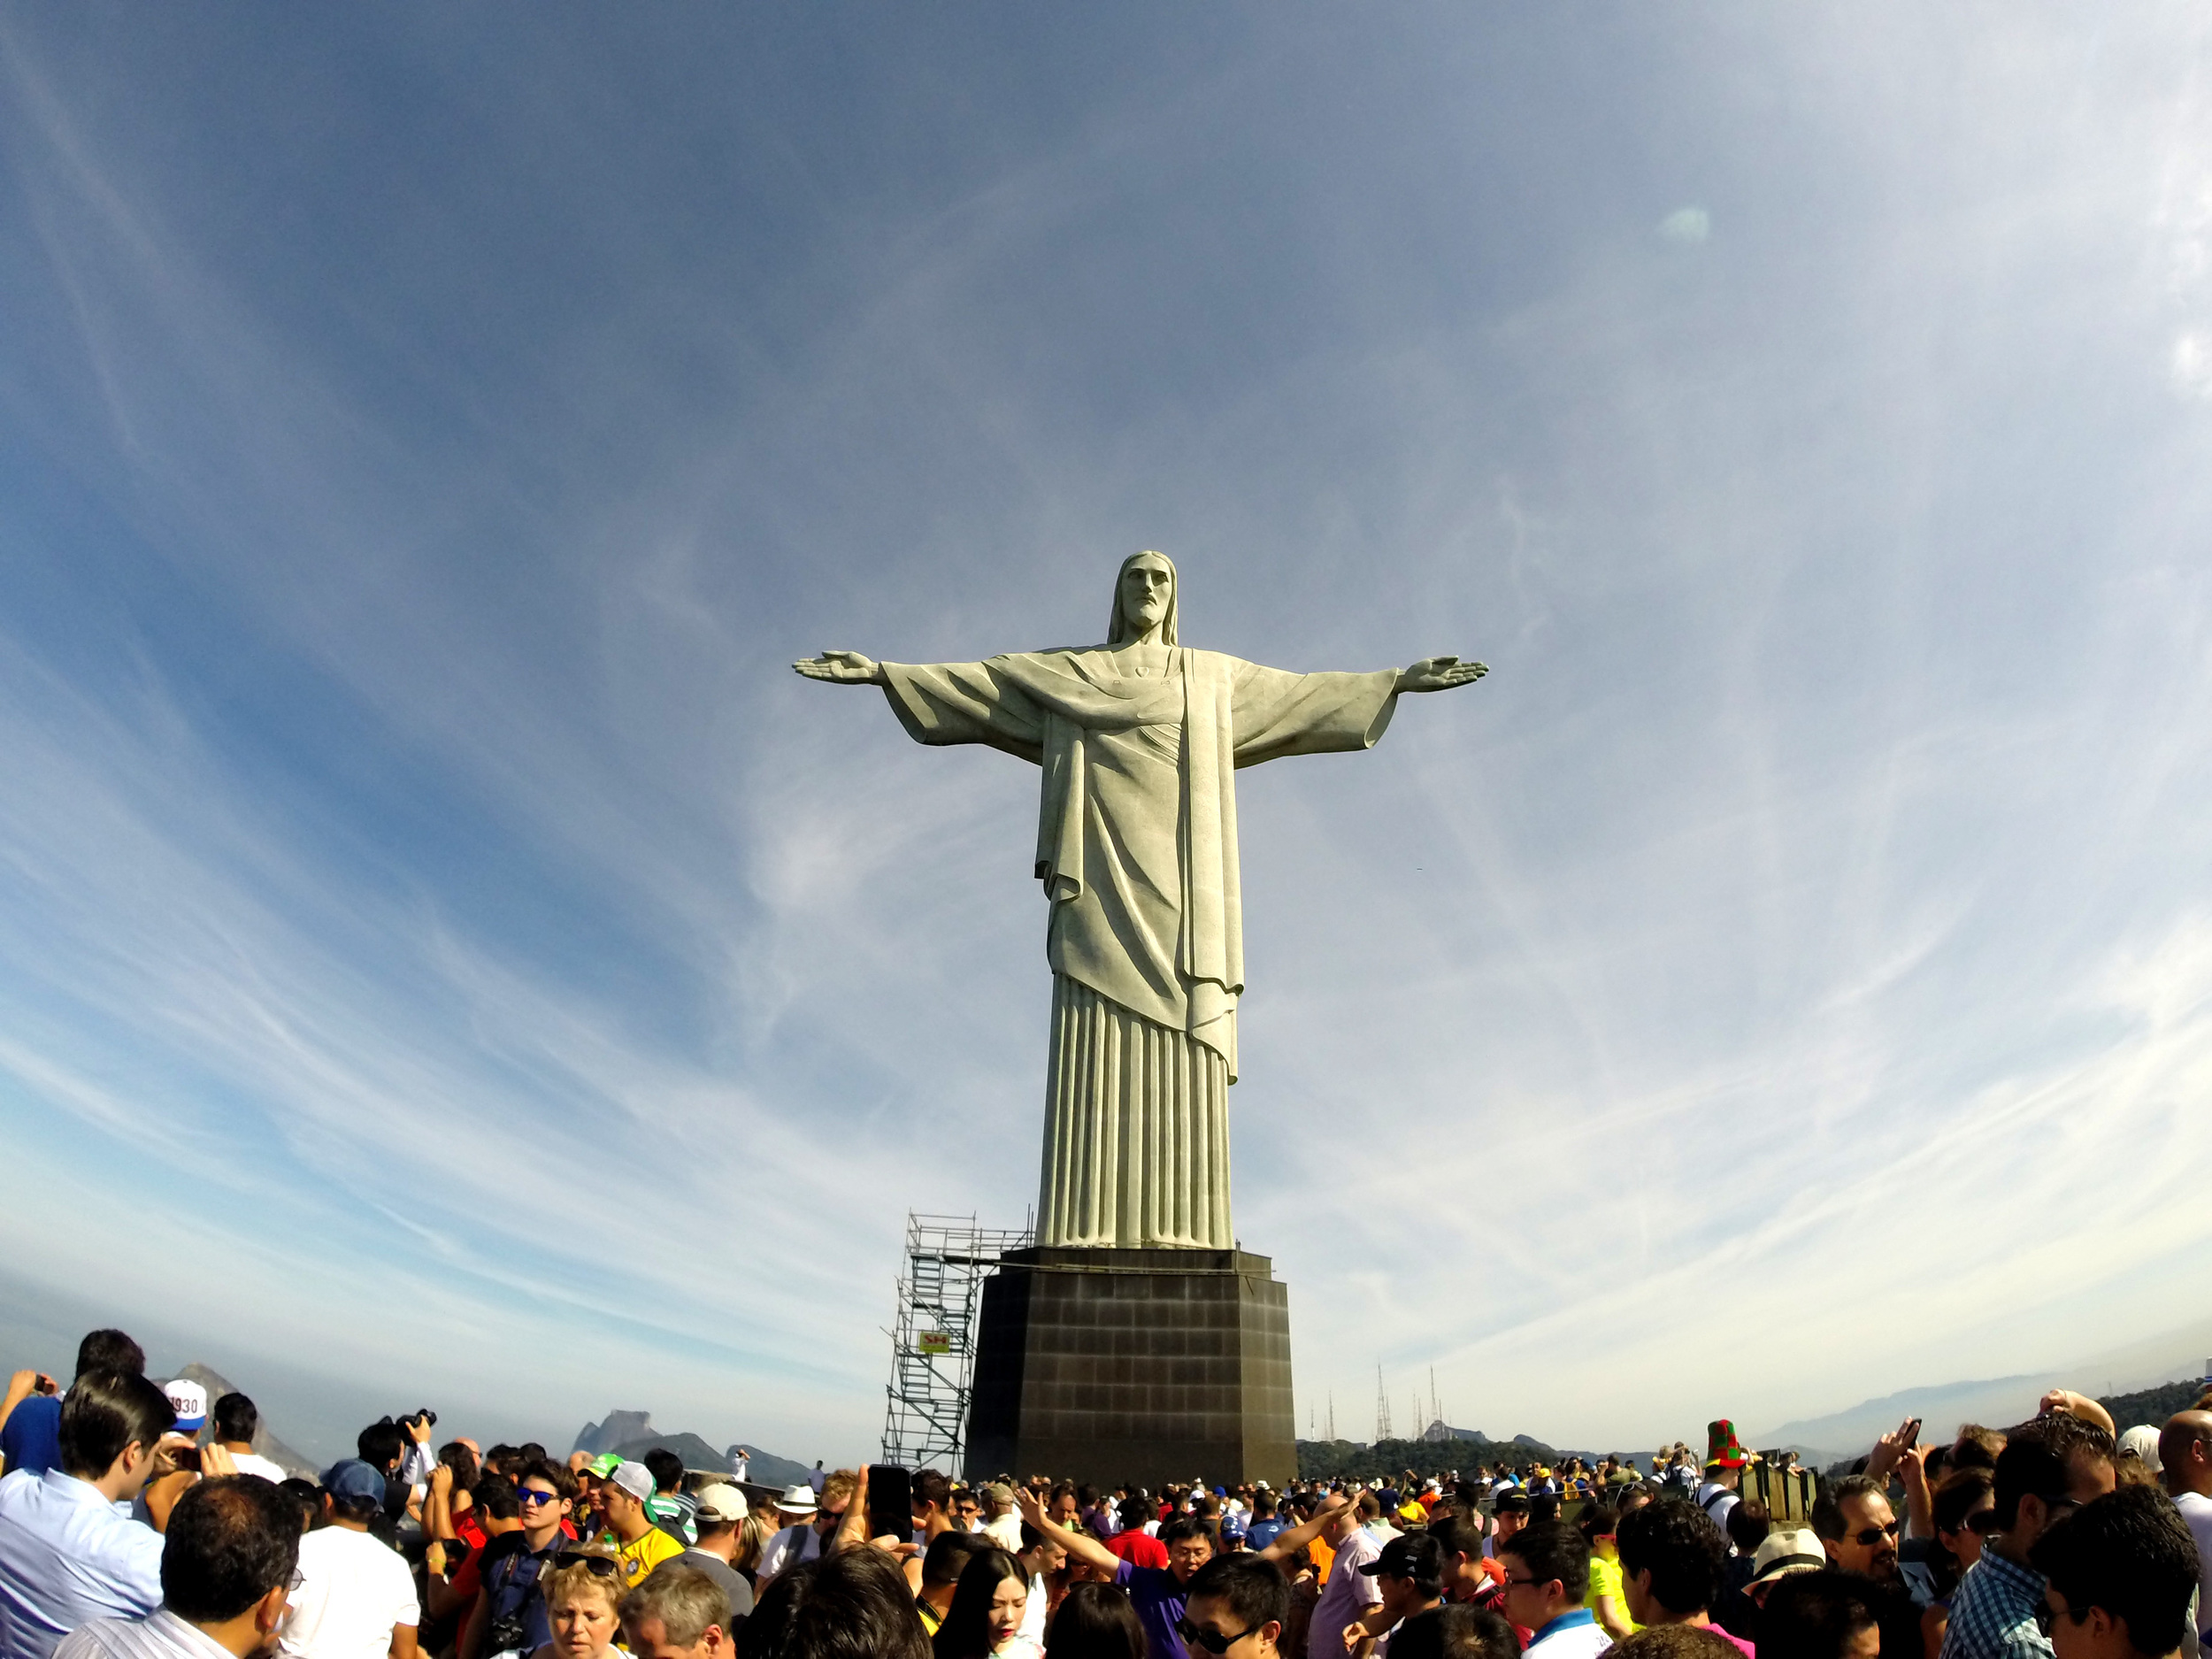 So many crowds at Christ the Redeemer in Rio de Janeiro, Brazil.